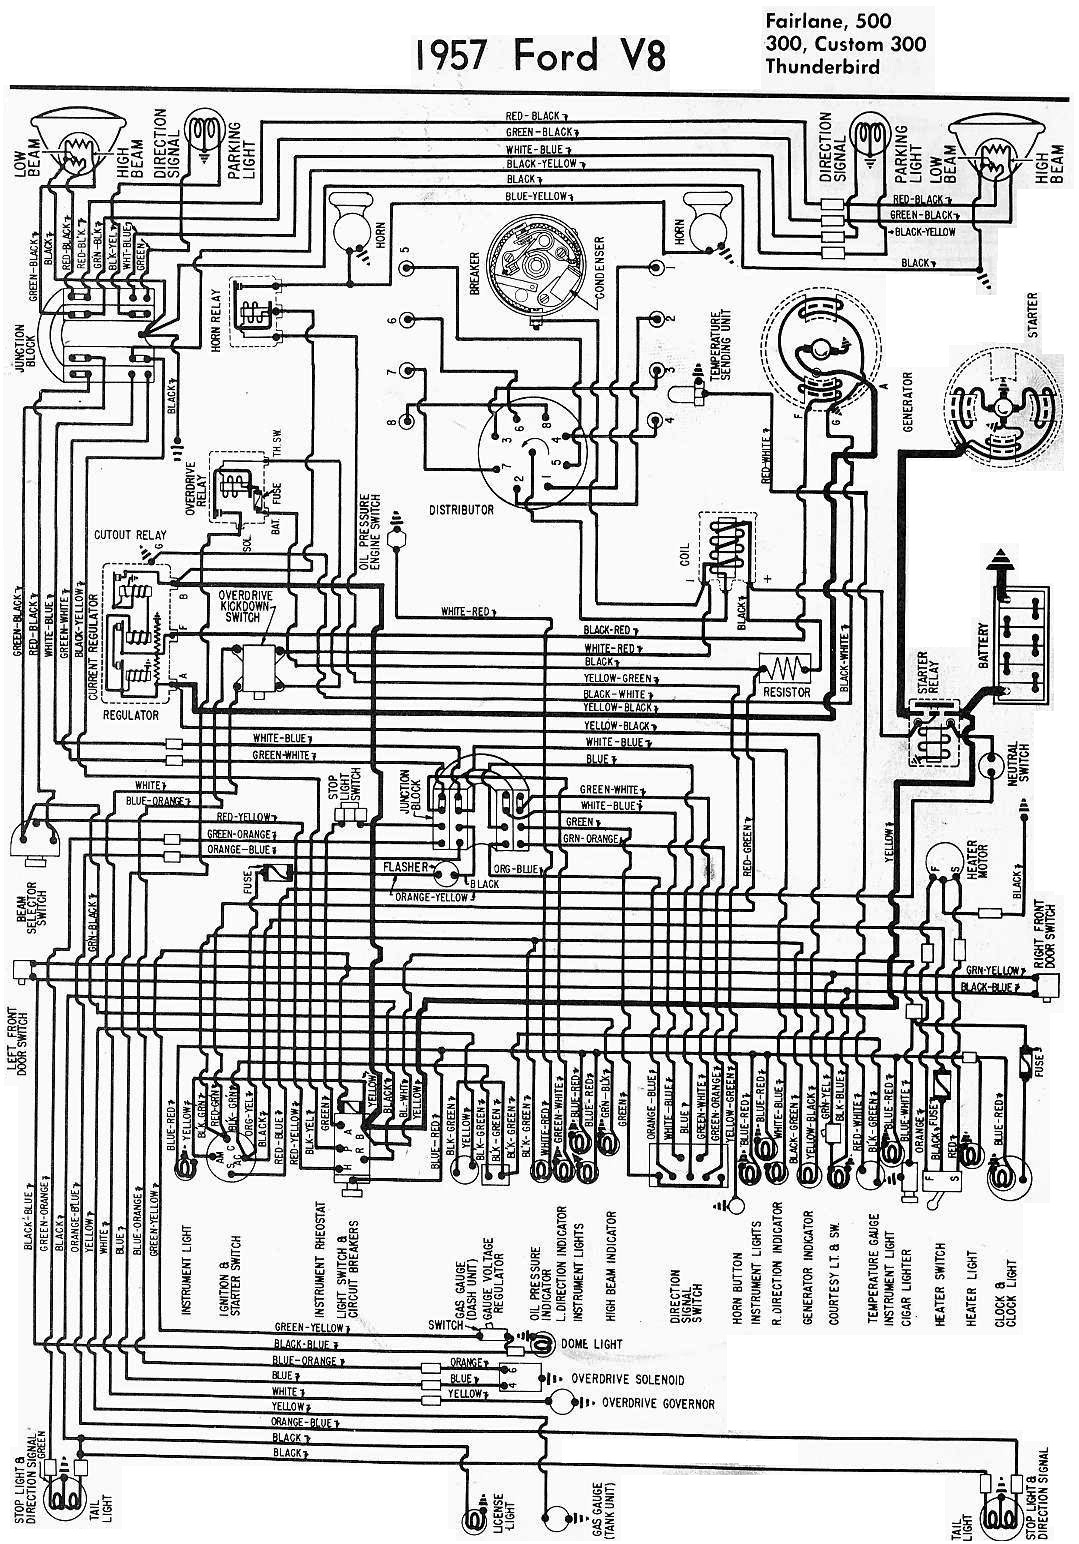 1968 ford fairlane wiring diagram 1957 ford fairlane 500, 300, custom 300, and thunderbird ...